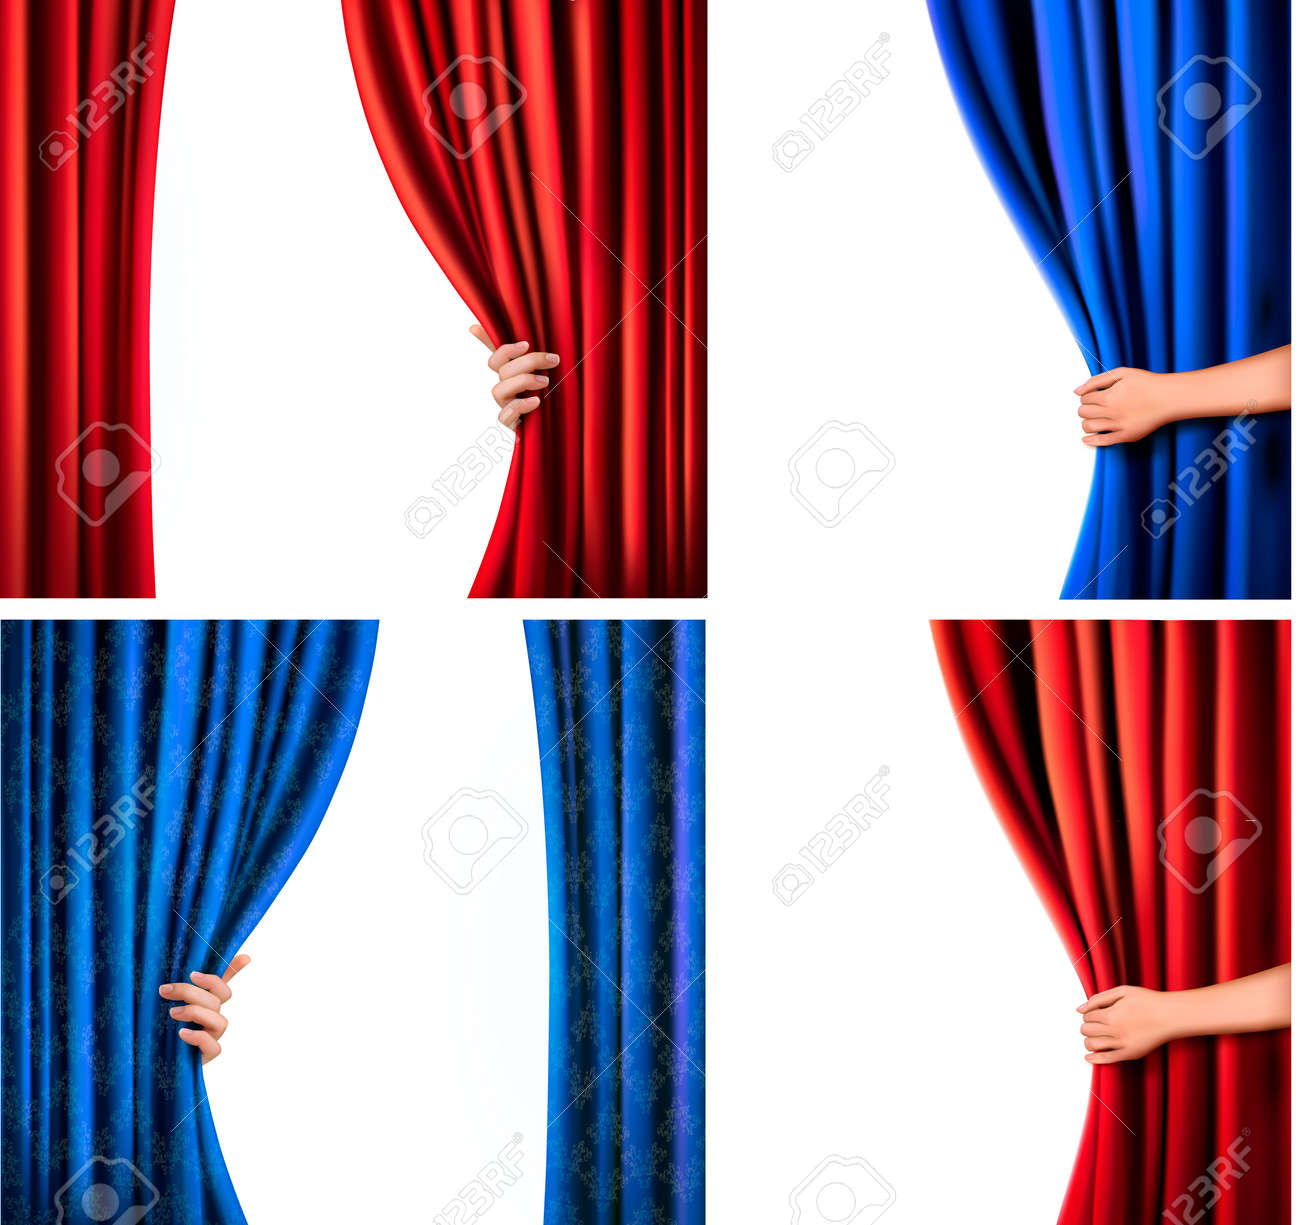 Stage curtain background open stage curtains background red stage - Open Stage Curtains Open Stage Curtains Set Of Backgrounds With Red And Blue Velvet Curtain